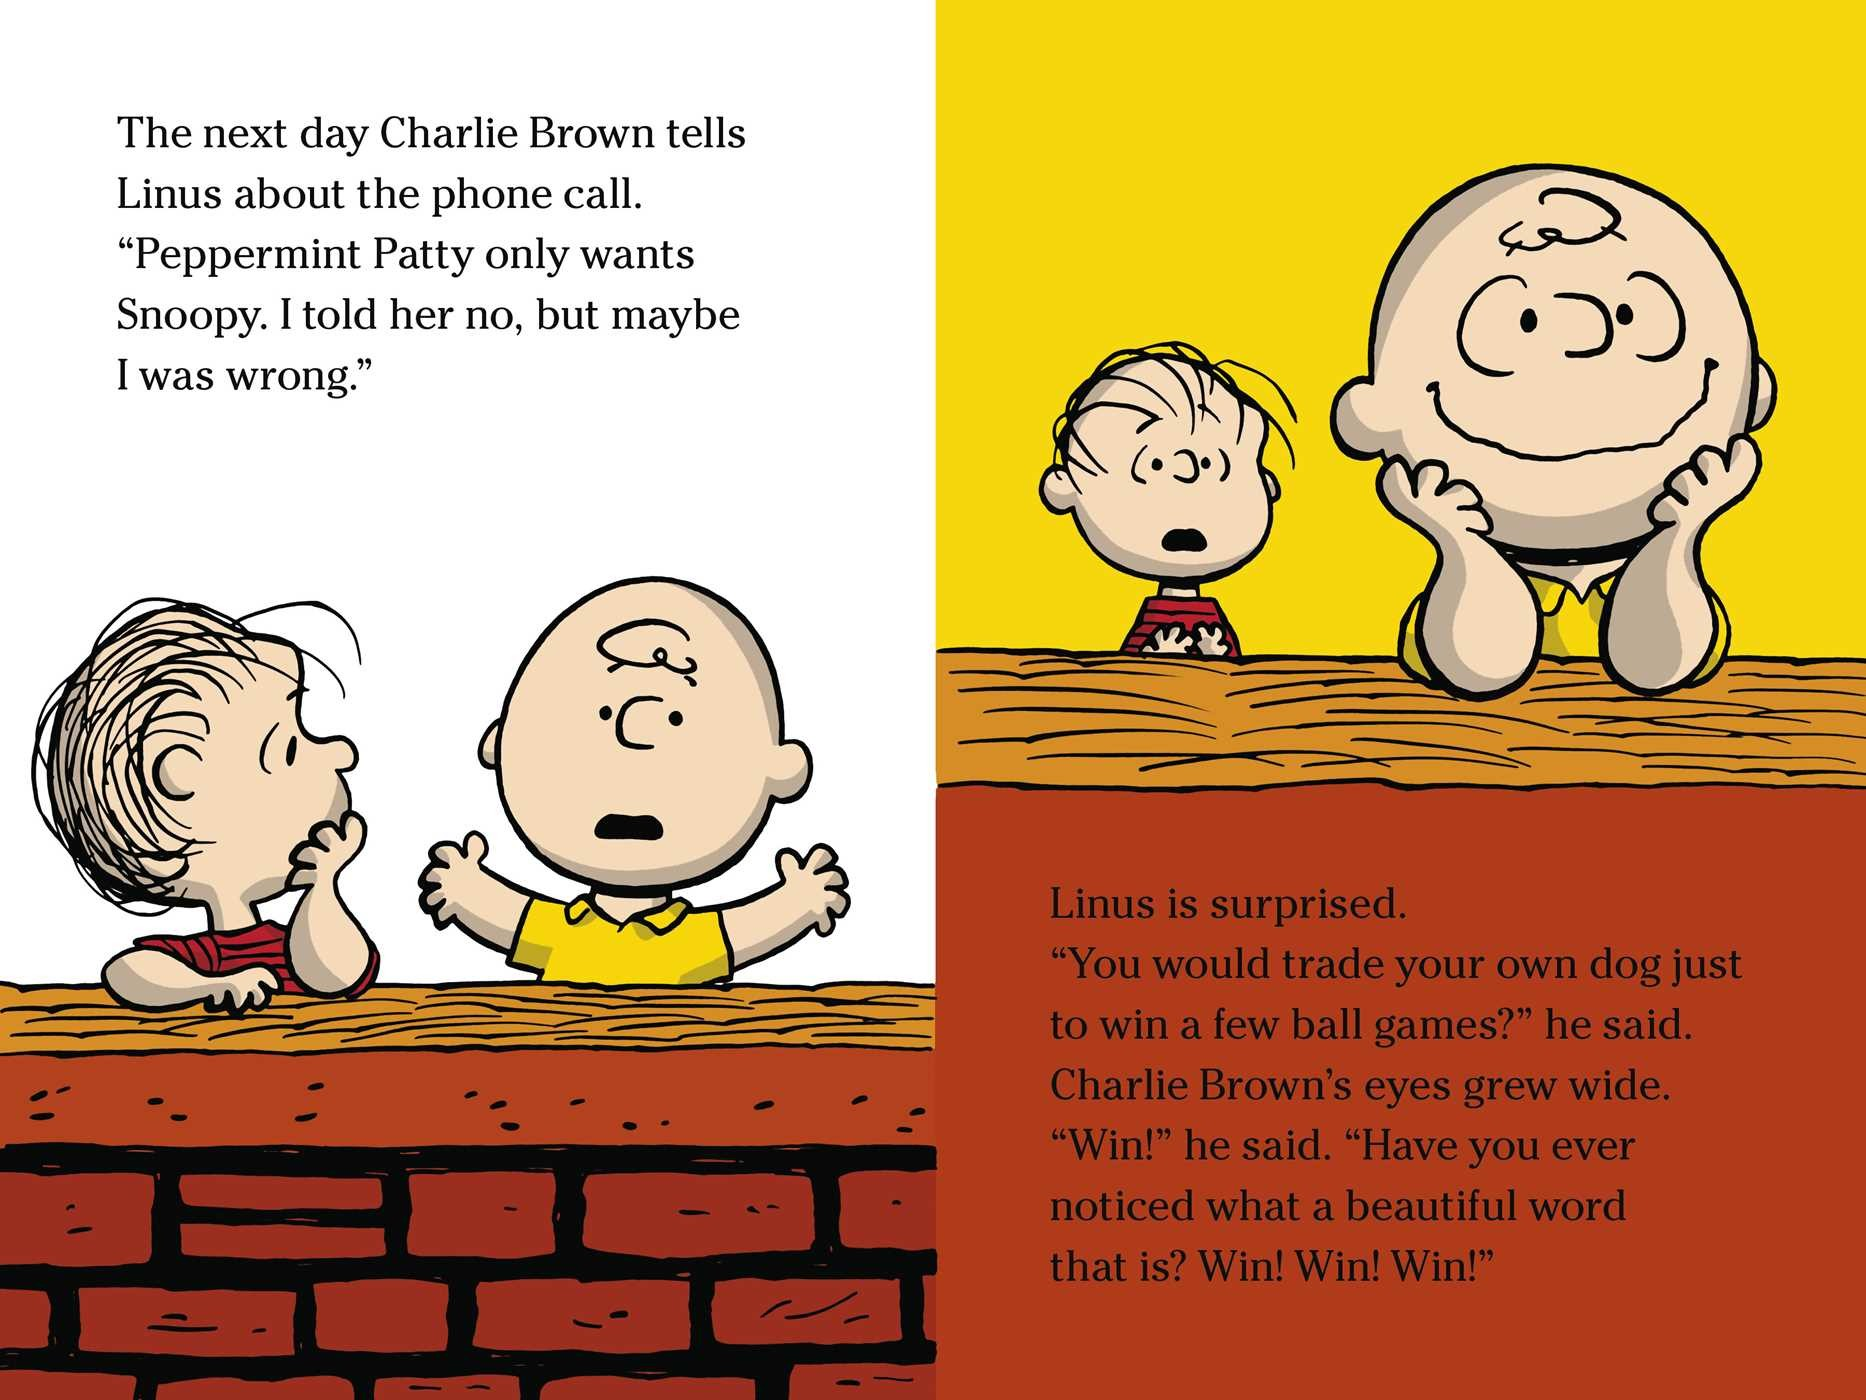 Make a trade charlie brown 9781481456876.in02